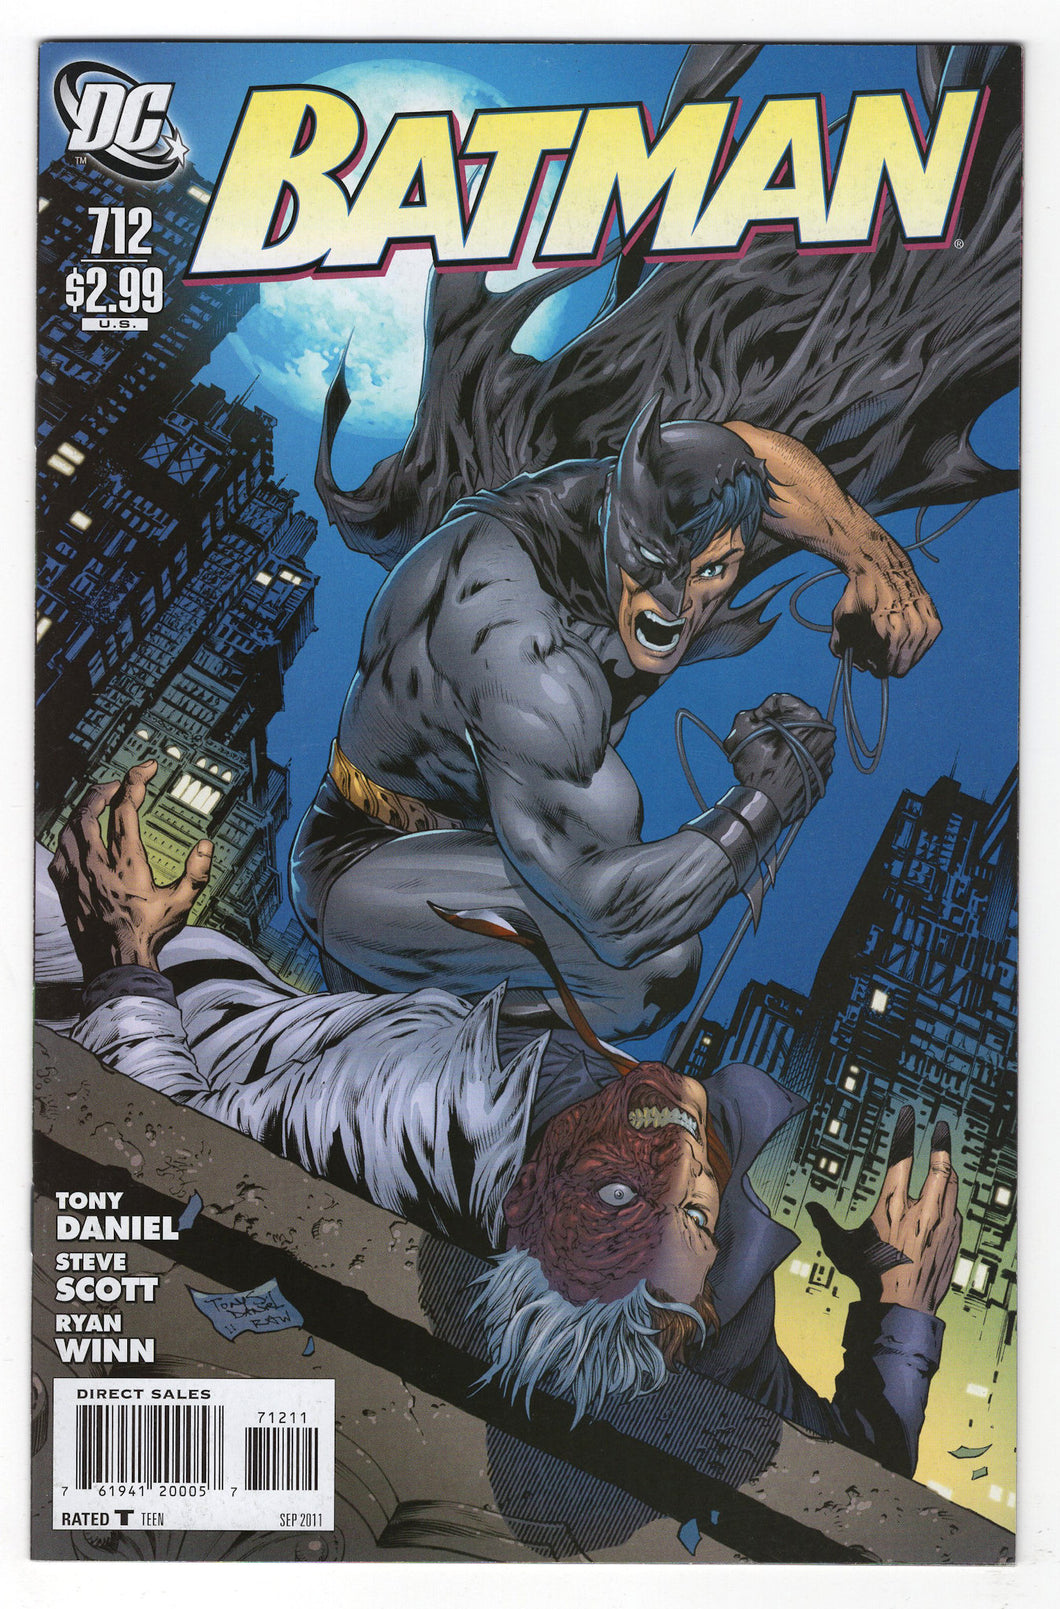 Batman #712 Regular Tony S Daniel Cover (2011) Front